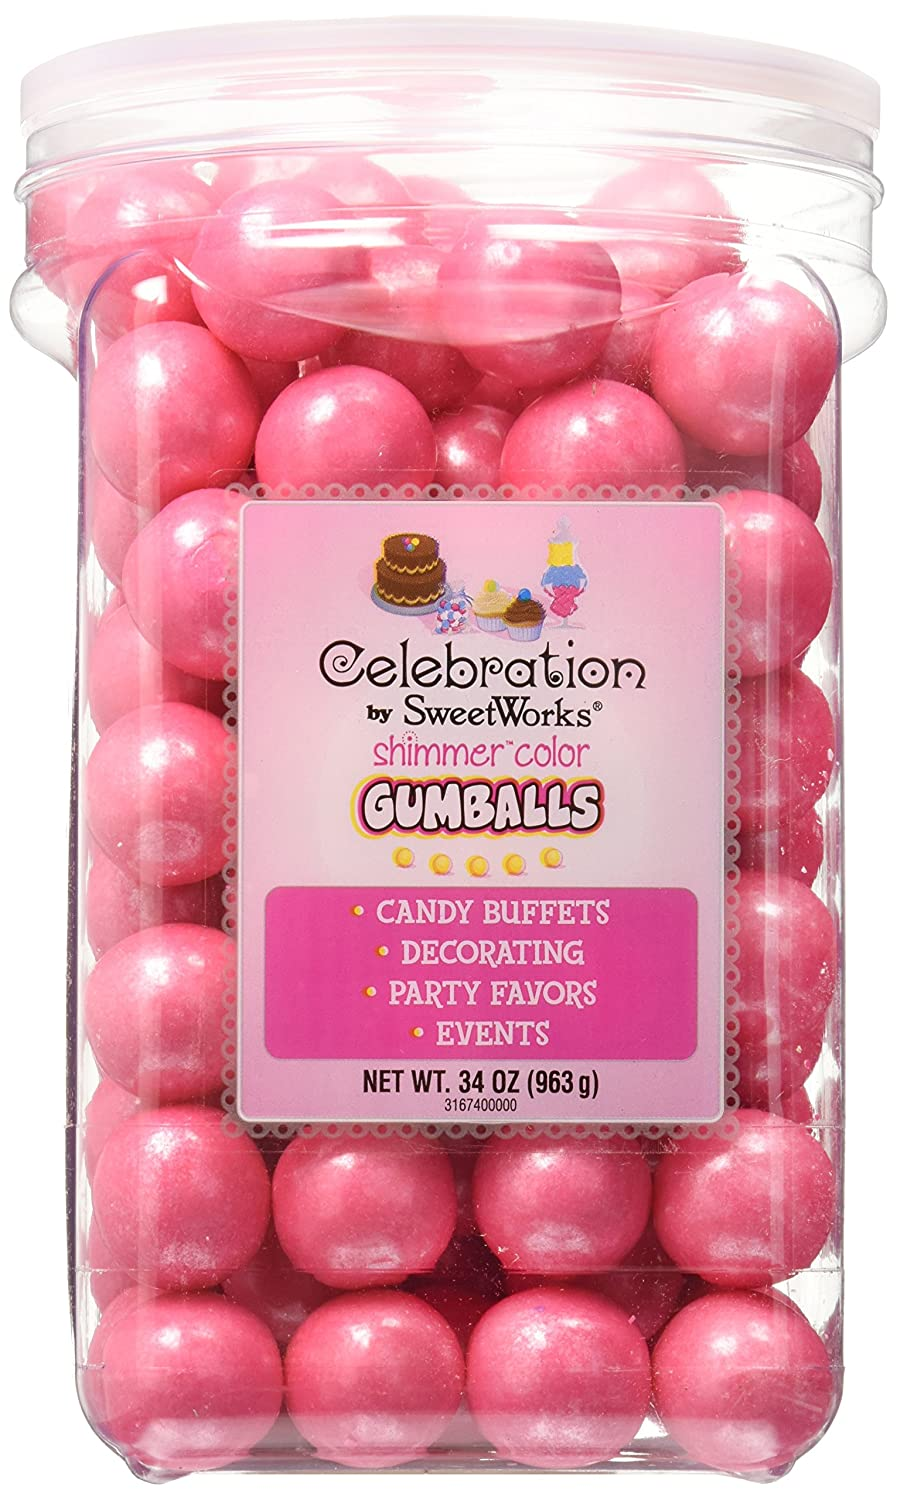 Amazon.com: Celebrations By SweetWorks Gumballs 34oz, Shimmer (TM ...